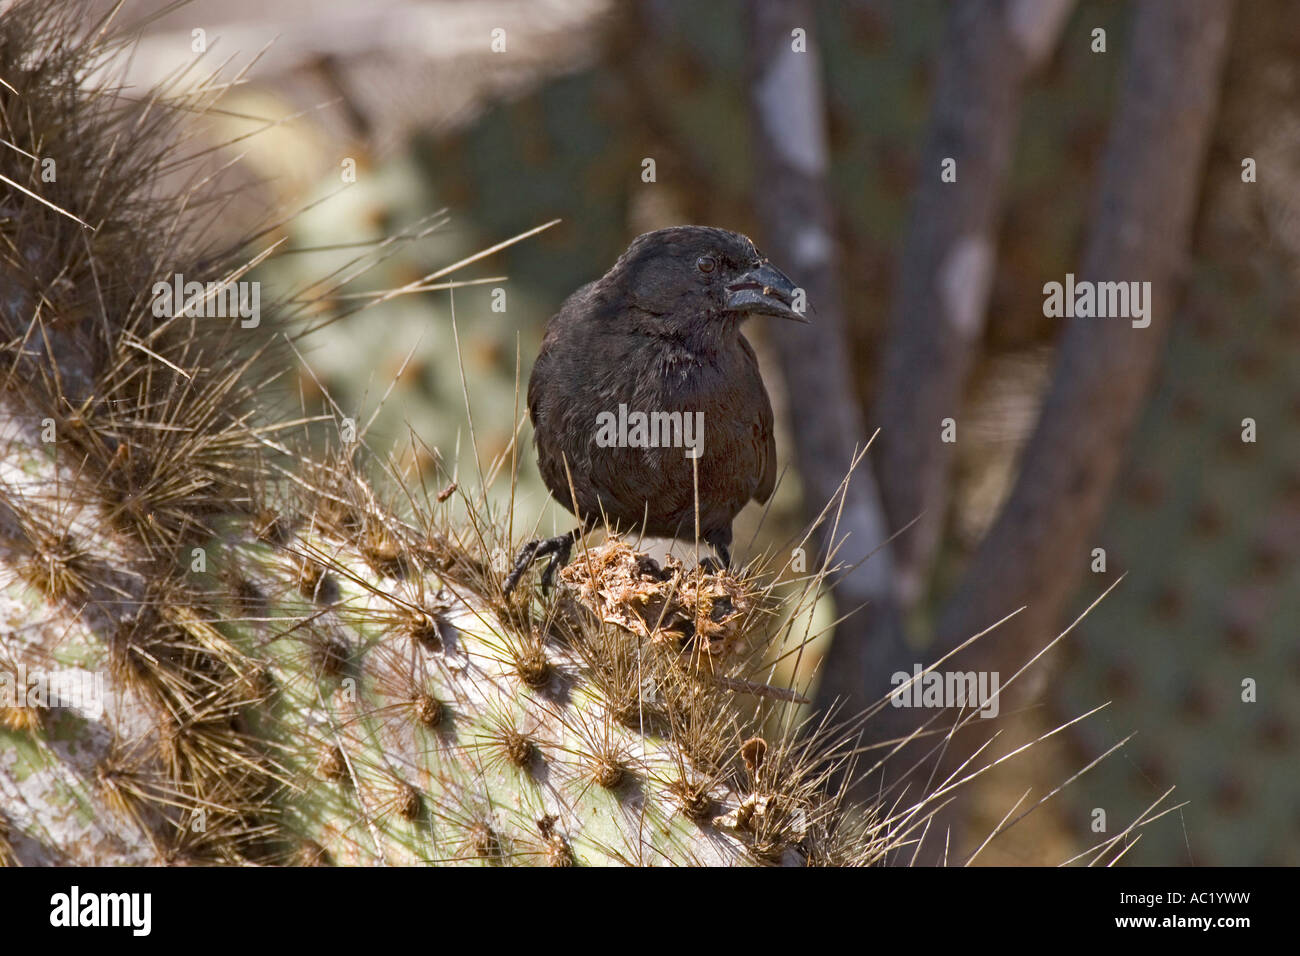 Male cactus ground finch onSanta Cruz at Cerro Dragon in the Galapagos island - Stock Image